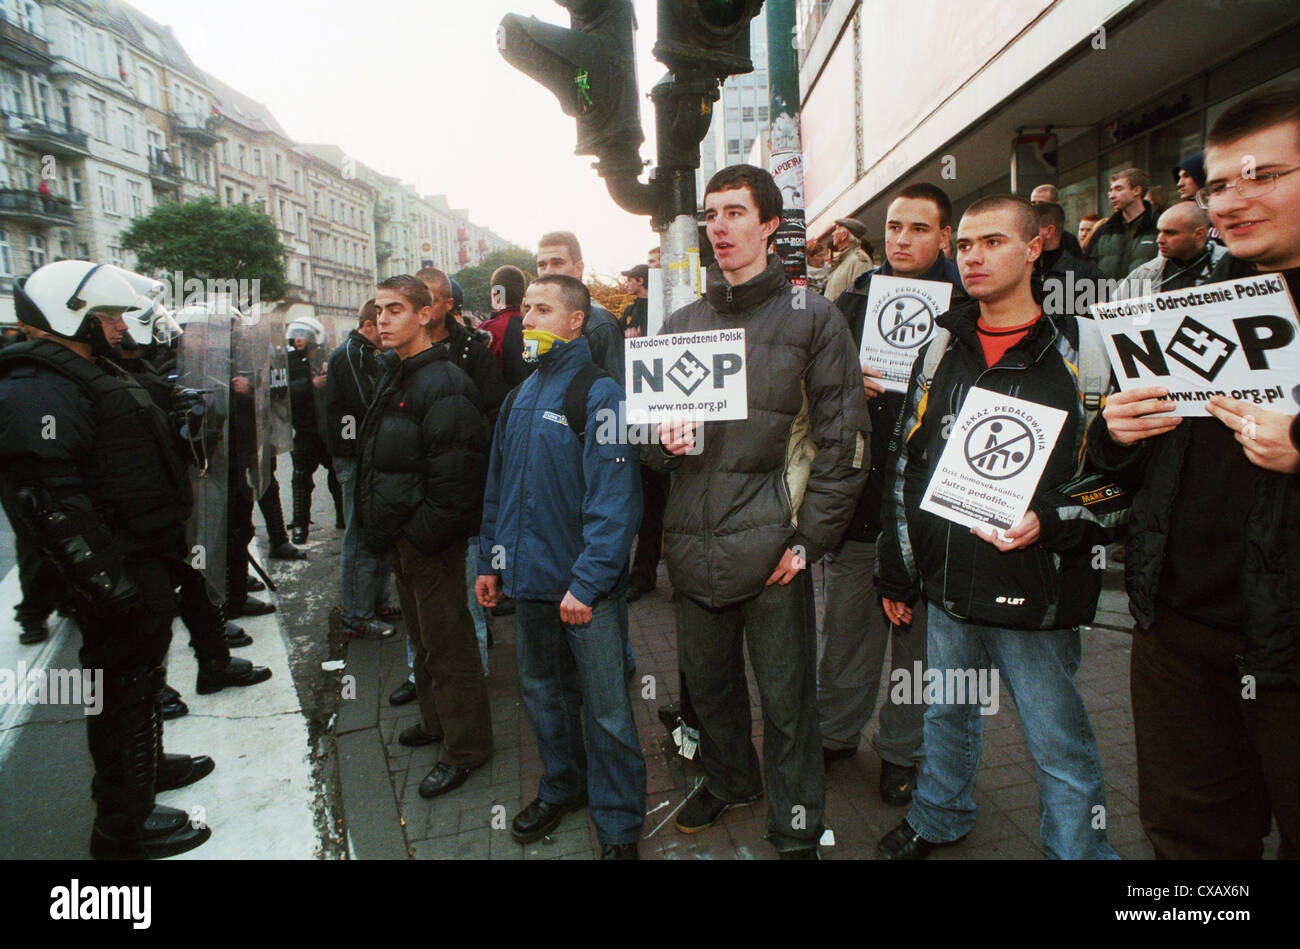 Right-wing extremists in Marsz Rownosci (march of equality), Posen (Poznan), Poland - Stock Image